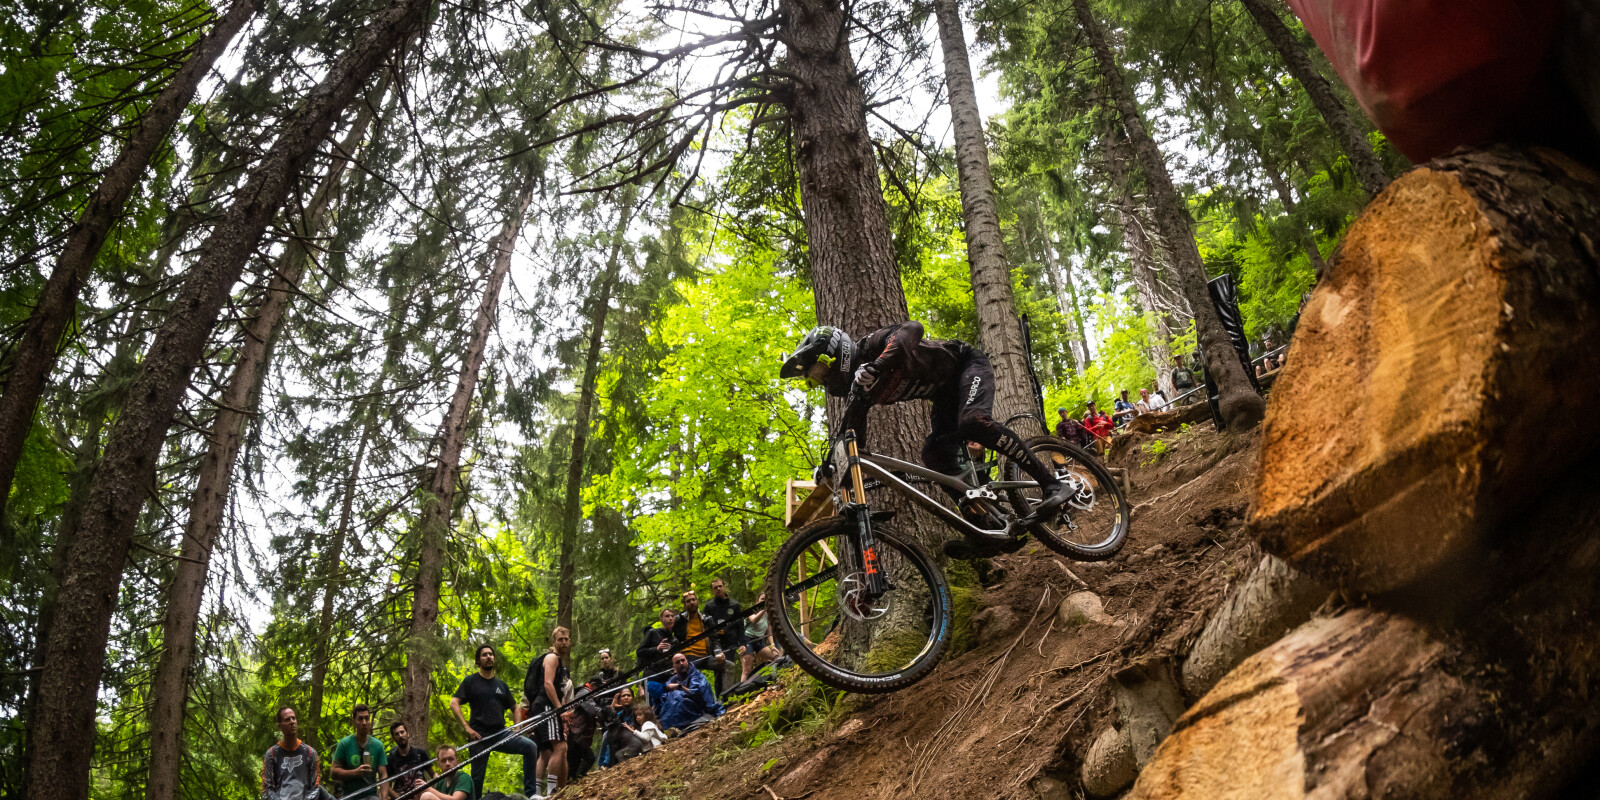 Finals images from World Cup Rd 2